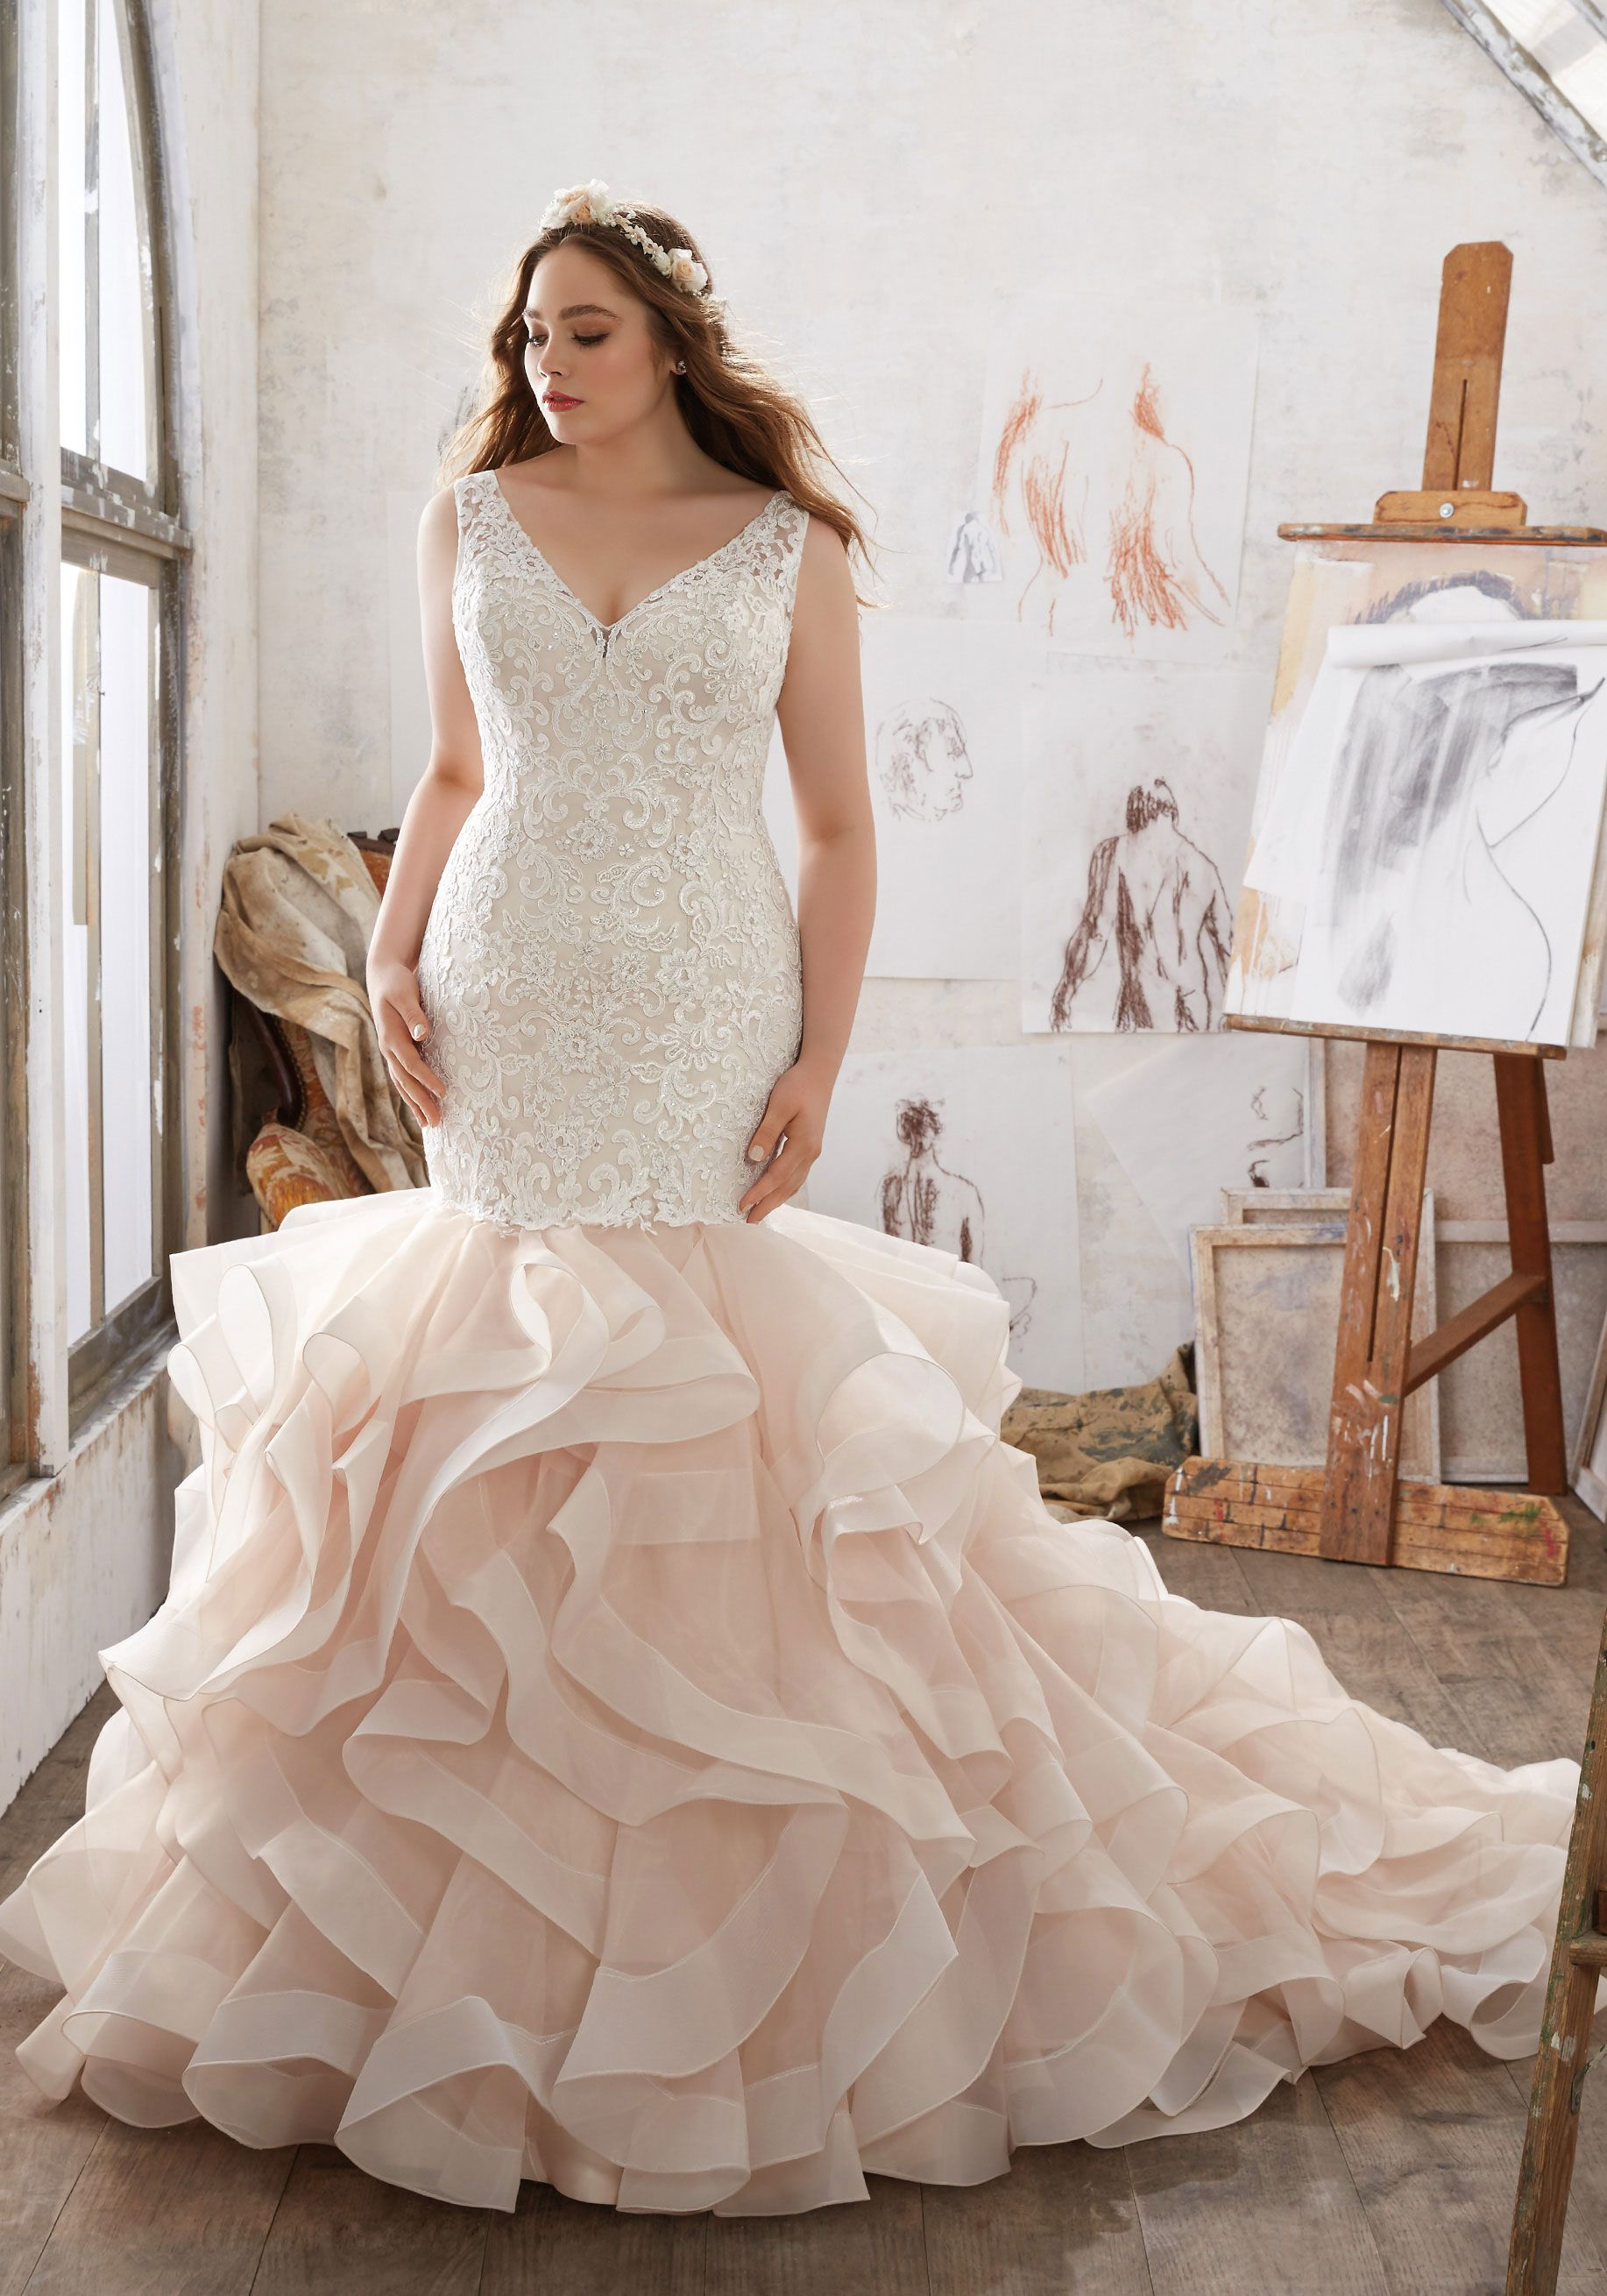 Julietta By Mori Lee Mildred 3216 Gown Features Frosted Alecon Lace Appliques And A Hors Wedding Dress Organza Plus Size Wedding Gowns Wedding Dress Styles